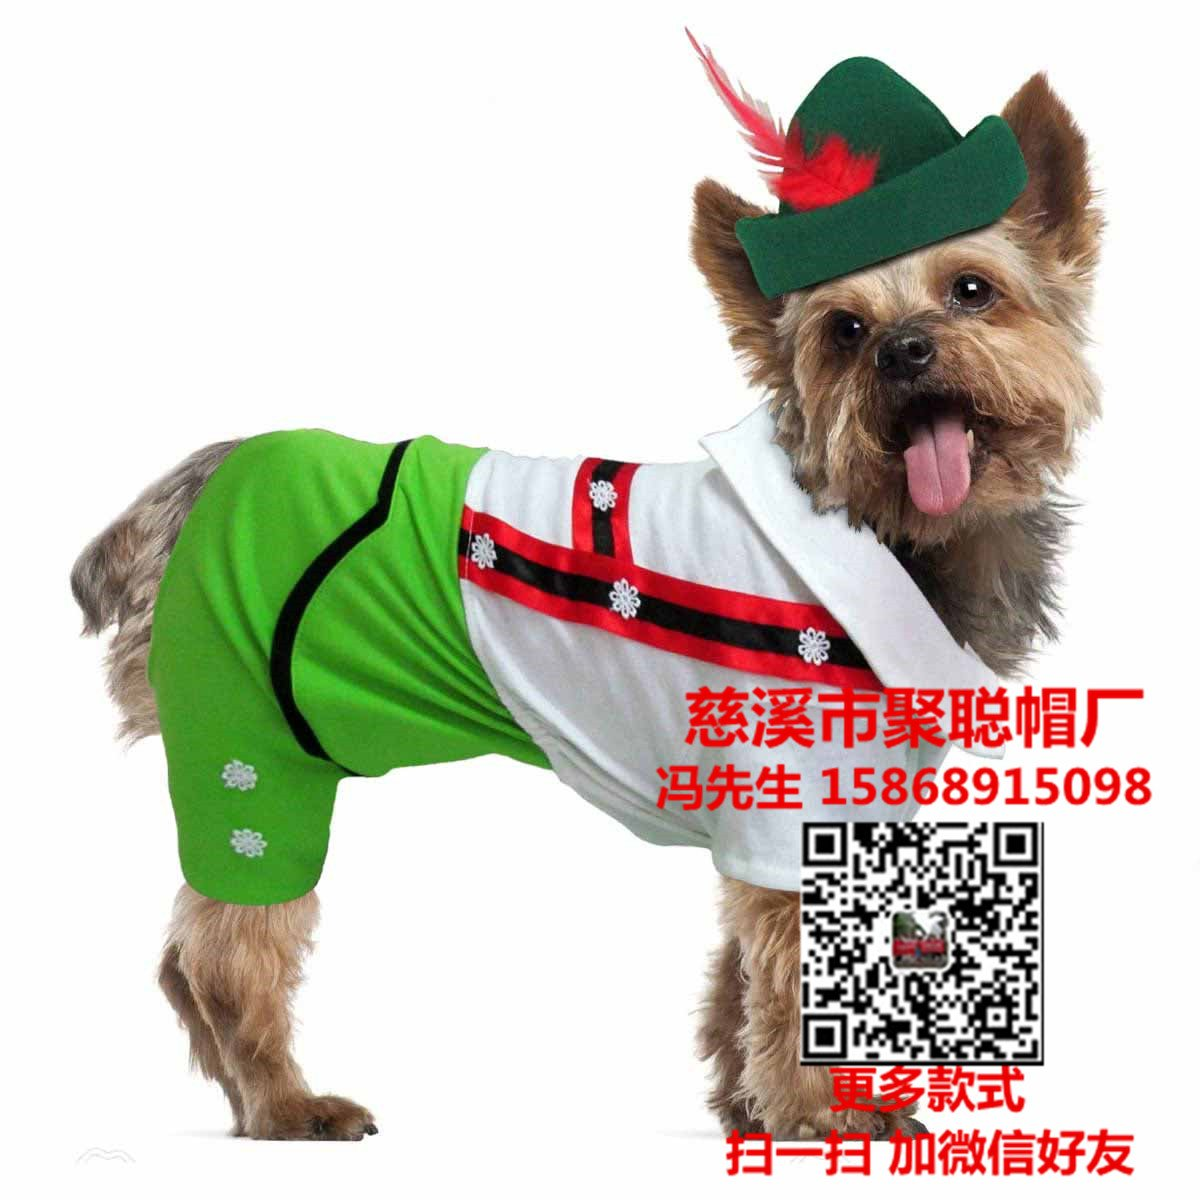 alpine-boy-halloween-dog-costume-1653_副本